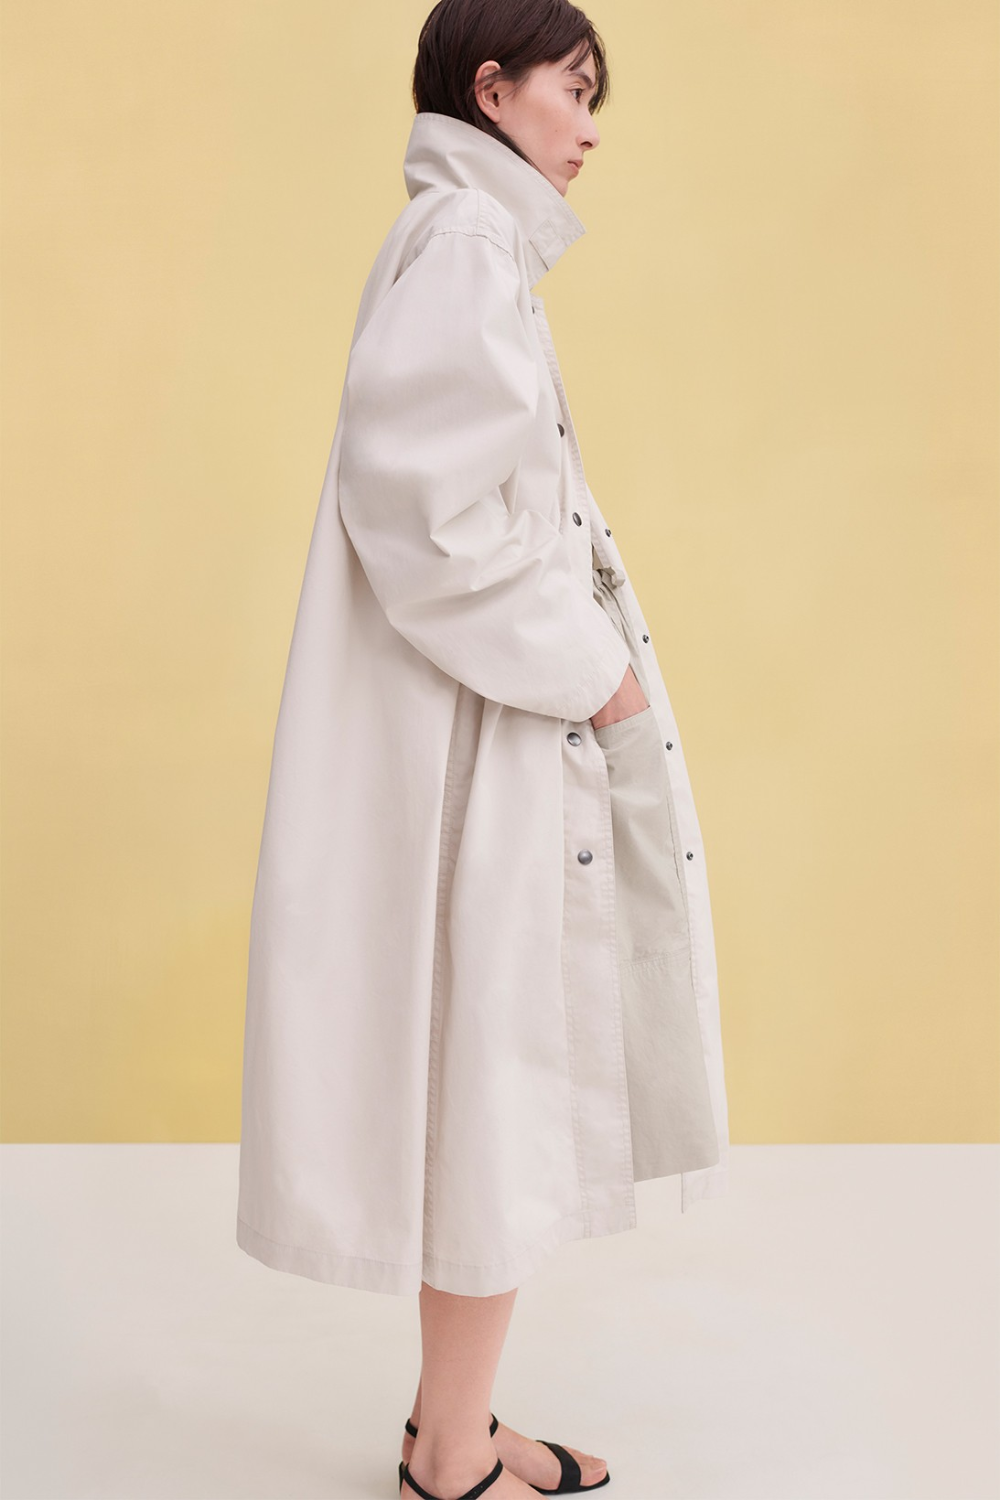 Take A Look At Uniqlo U S Ss20 Contemporary Future Lifewear Essentials Collection Long Coat Coats For Women Uniqlo [ 1500 x 1000 Pixel ]